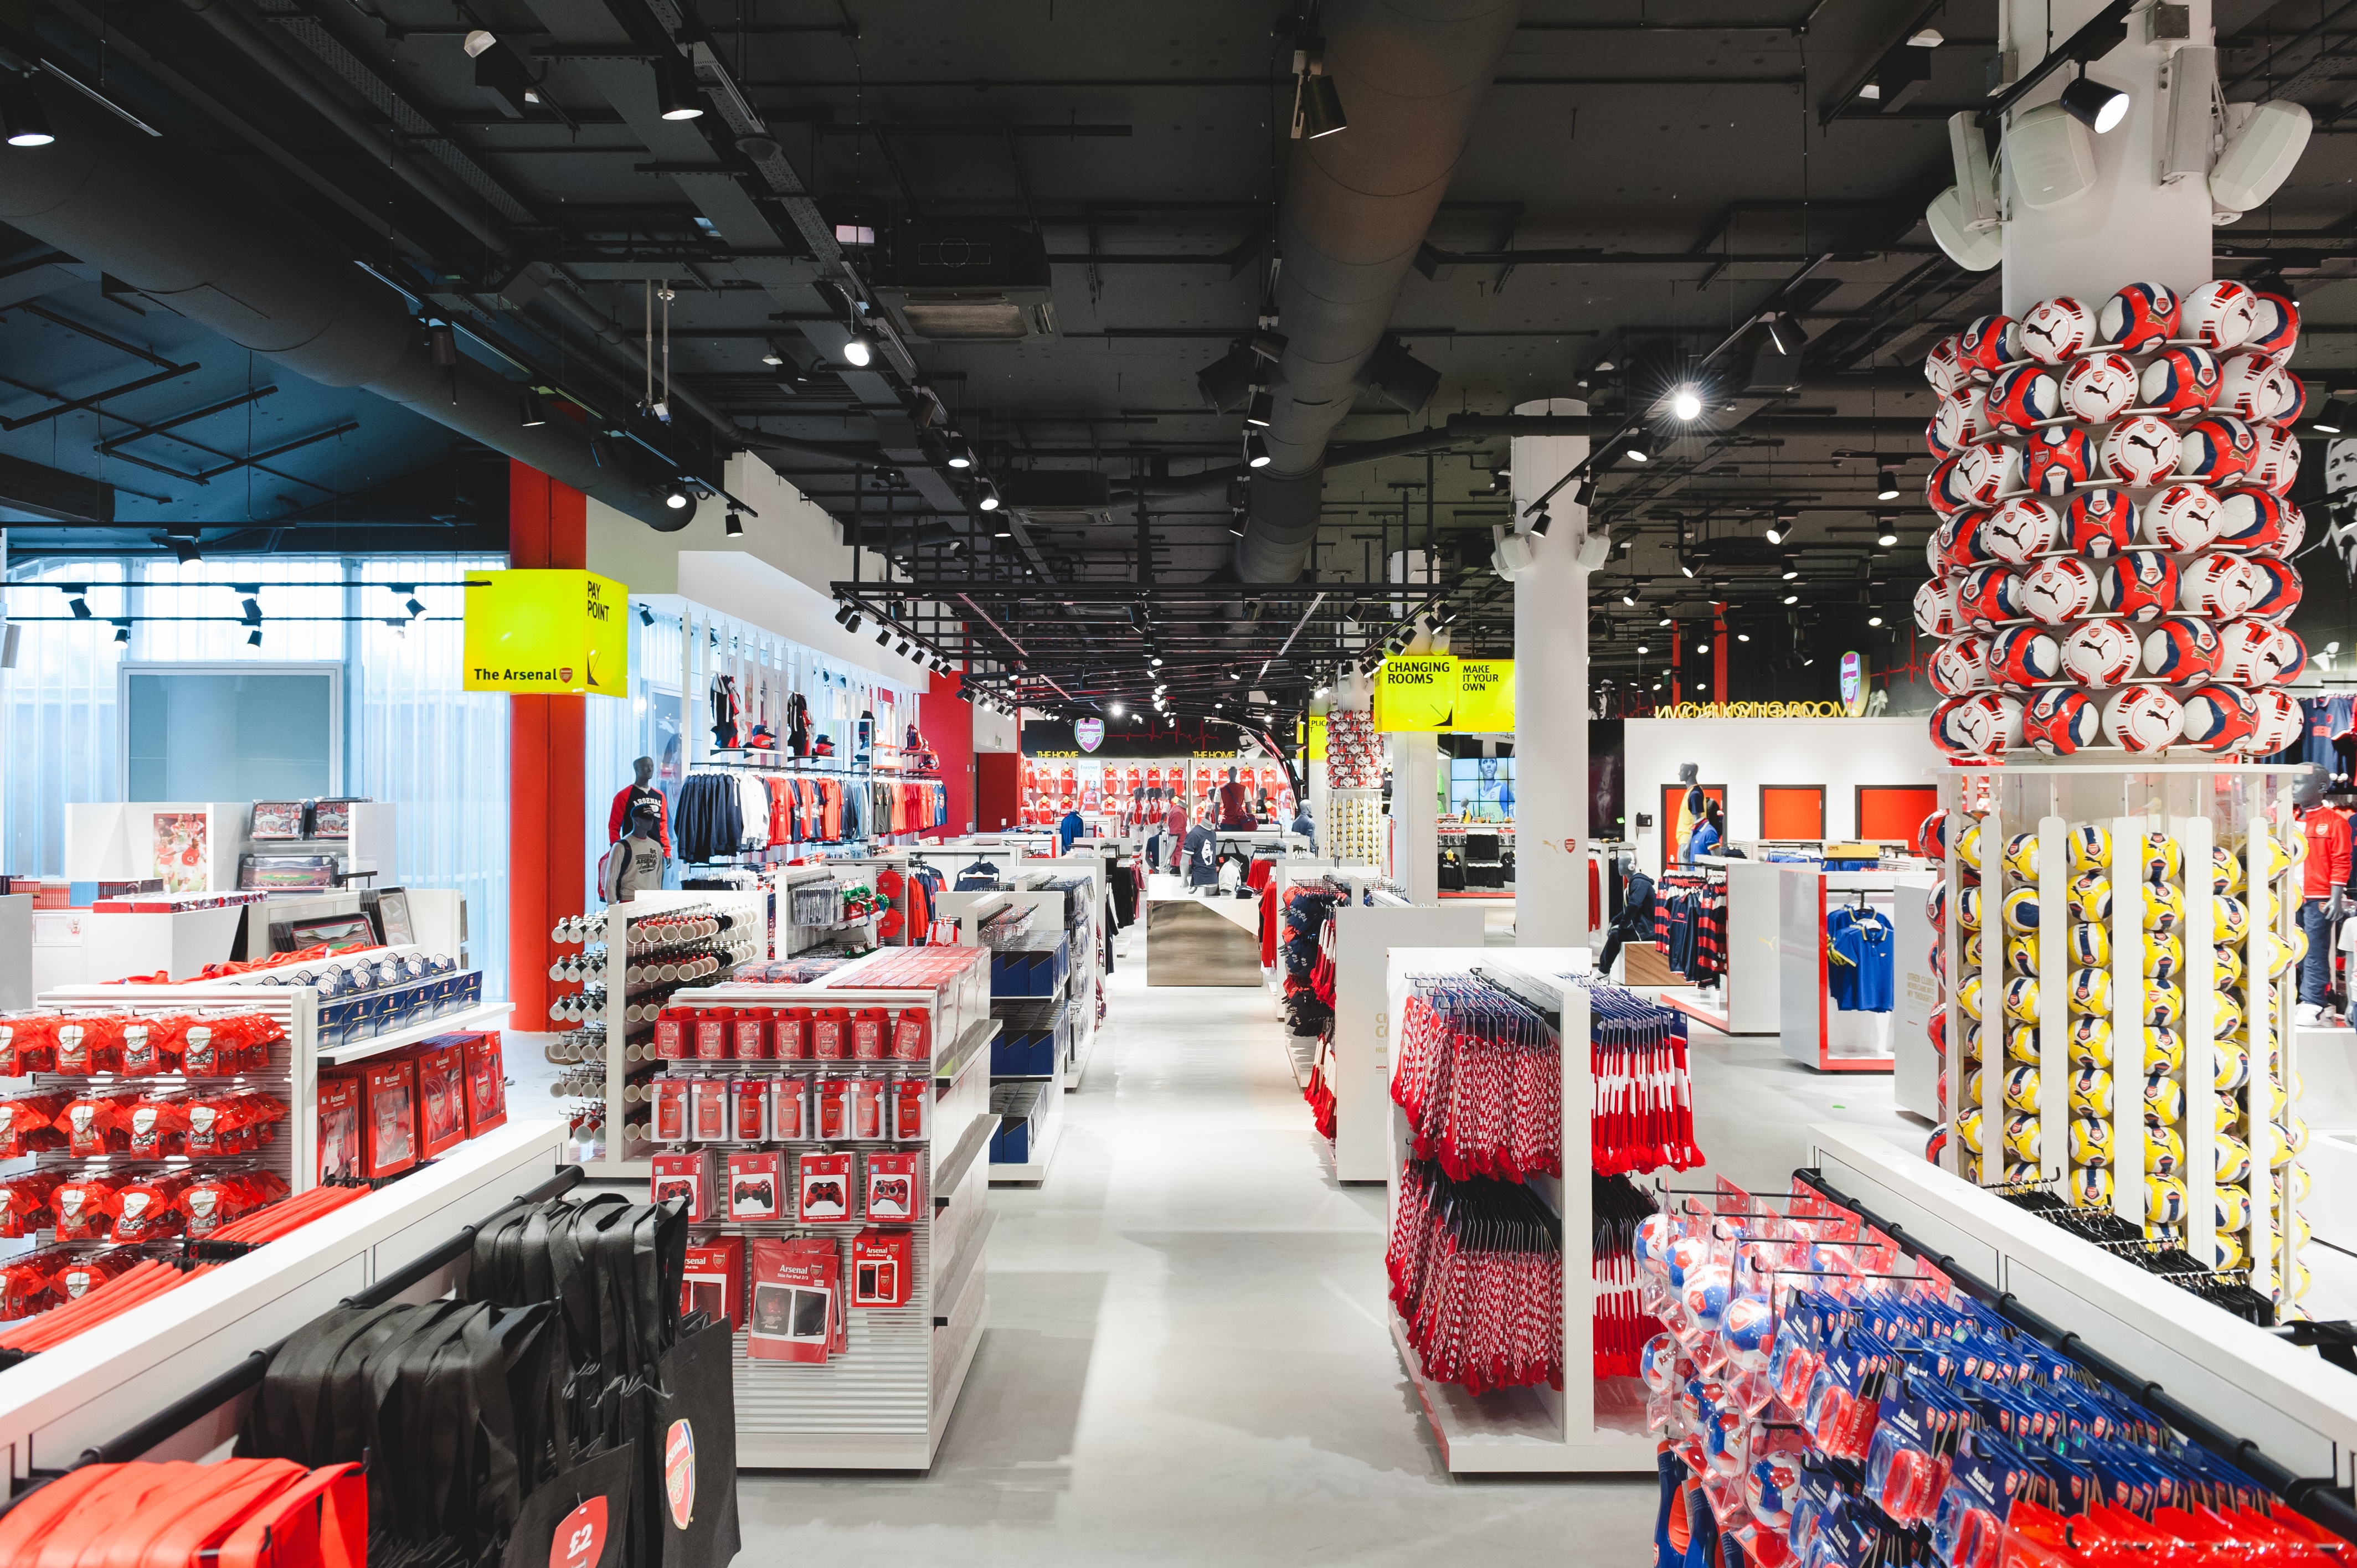 dea6b2d53a4 arsenal armoury retail store has completed its re-design. – solus